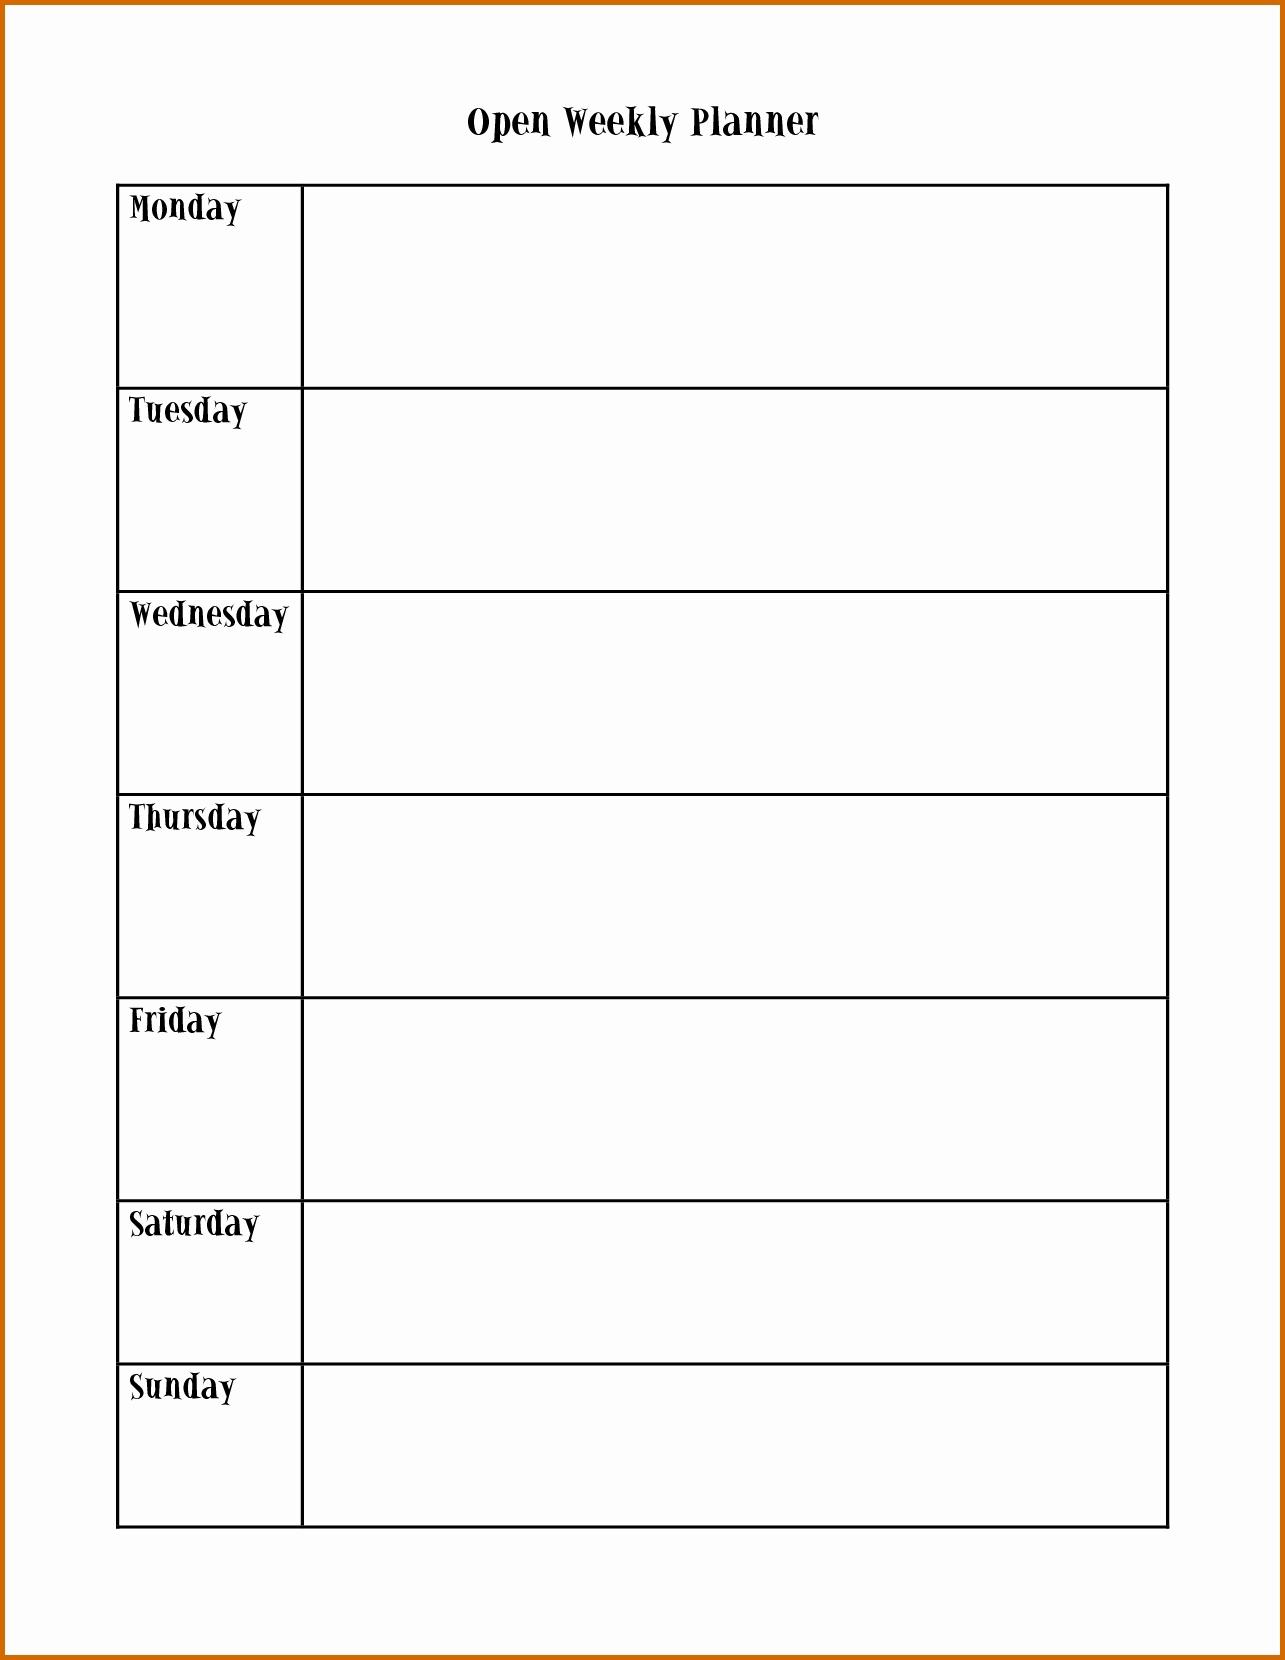 Schedule Template Monday Through Iday Weekly Calendar Ee Printable in Monday To Friday Planner Template